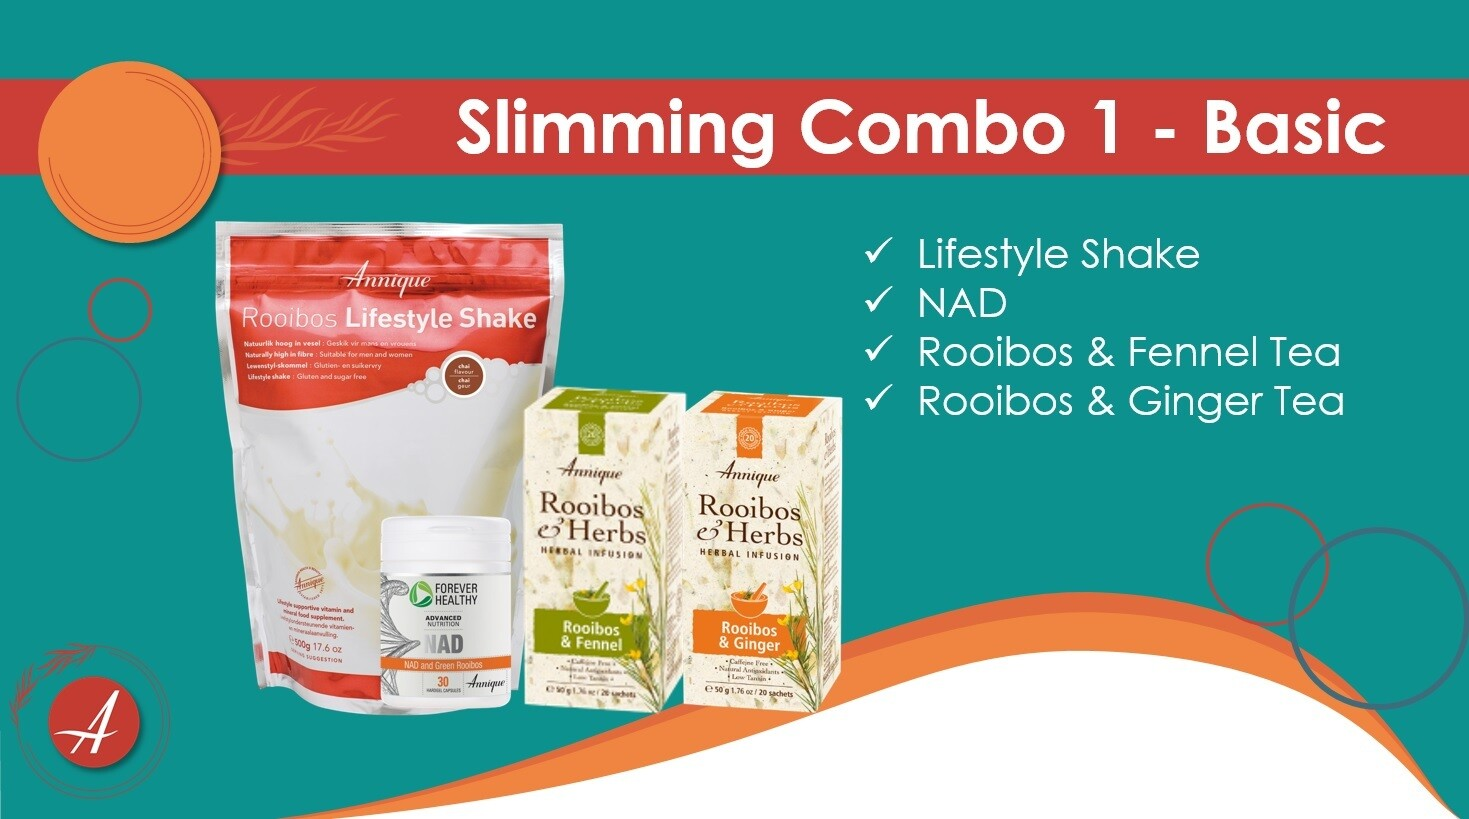 Slimming Combo 1 - Basic